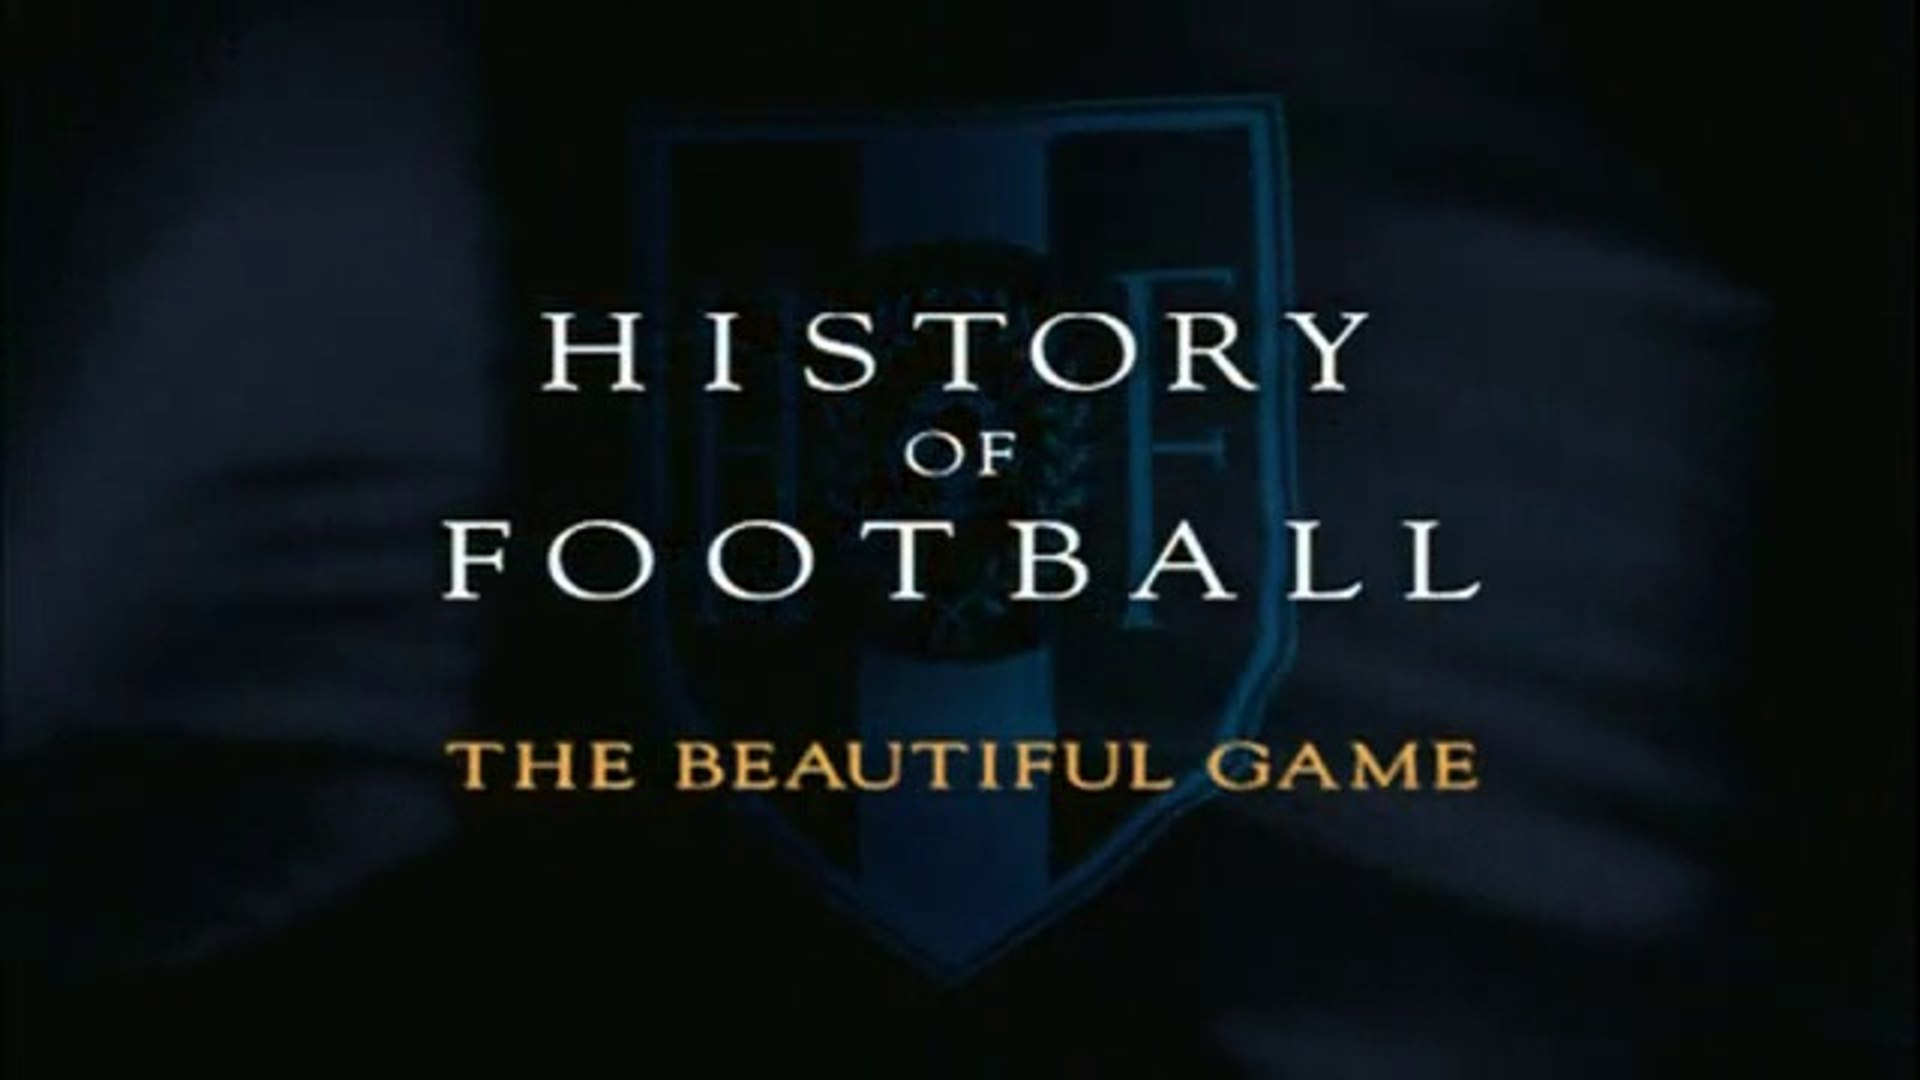 History of Football: A Game for All